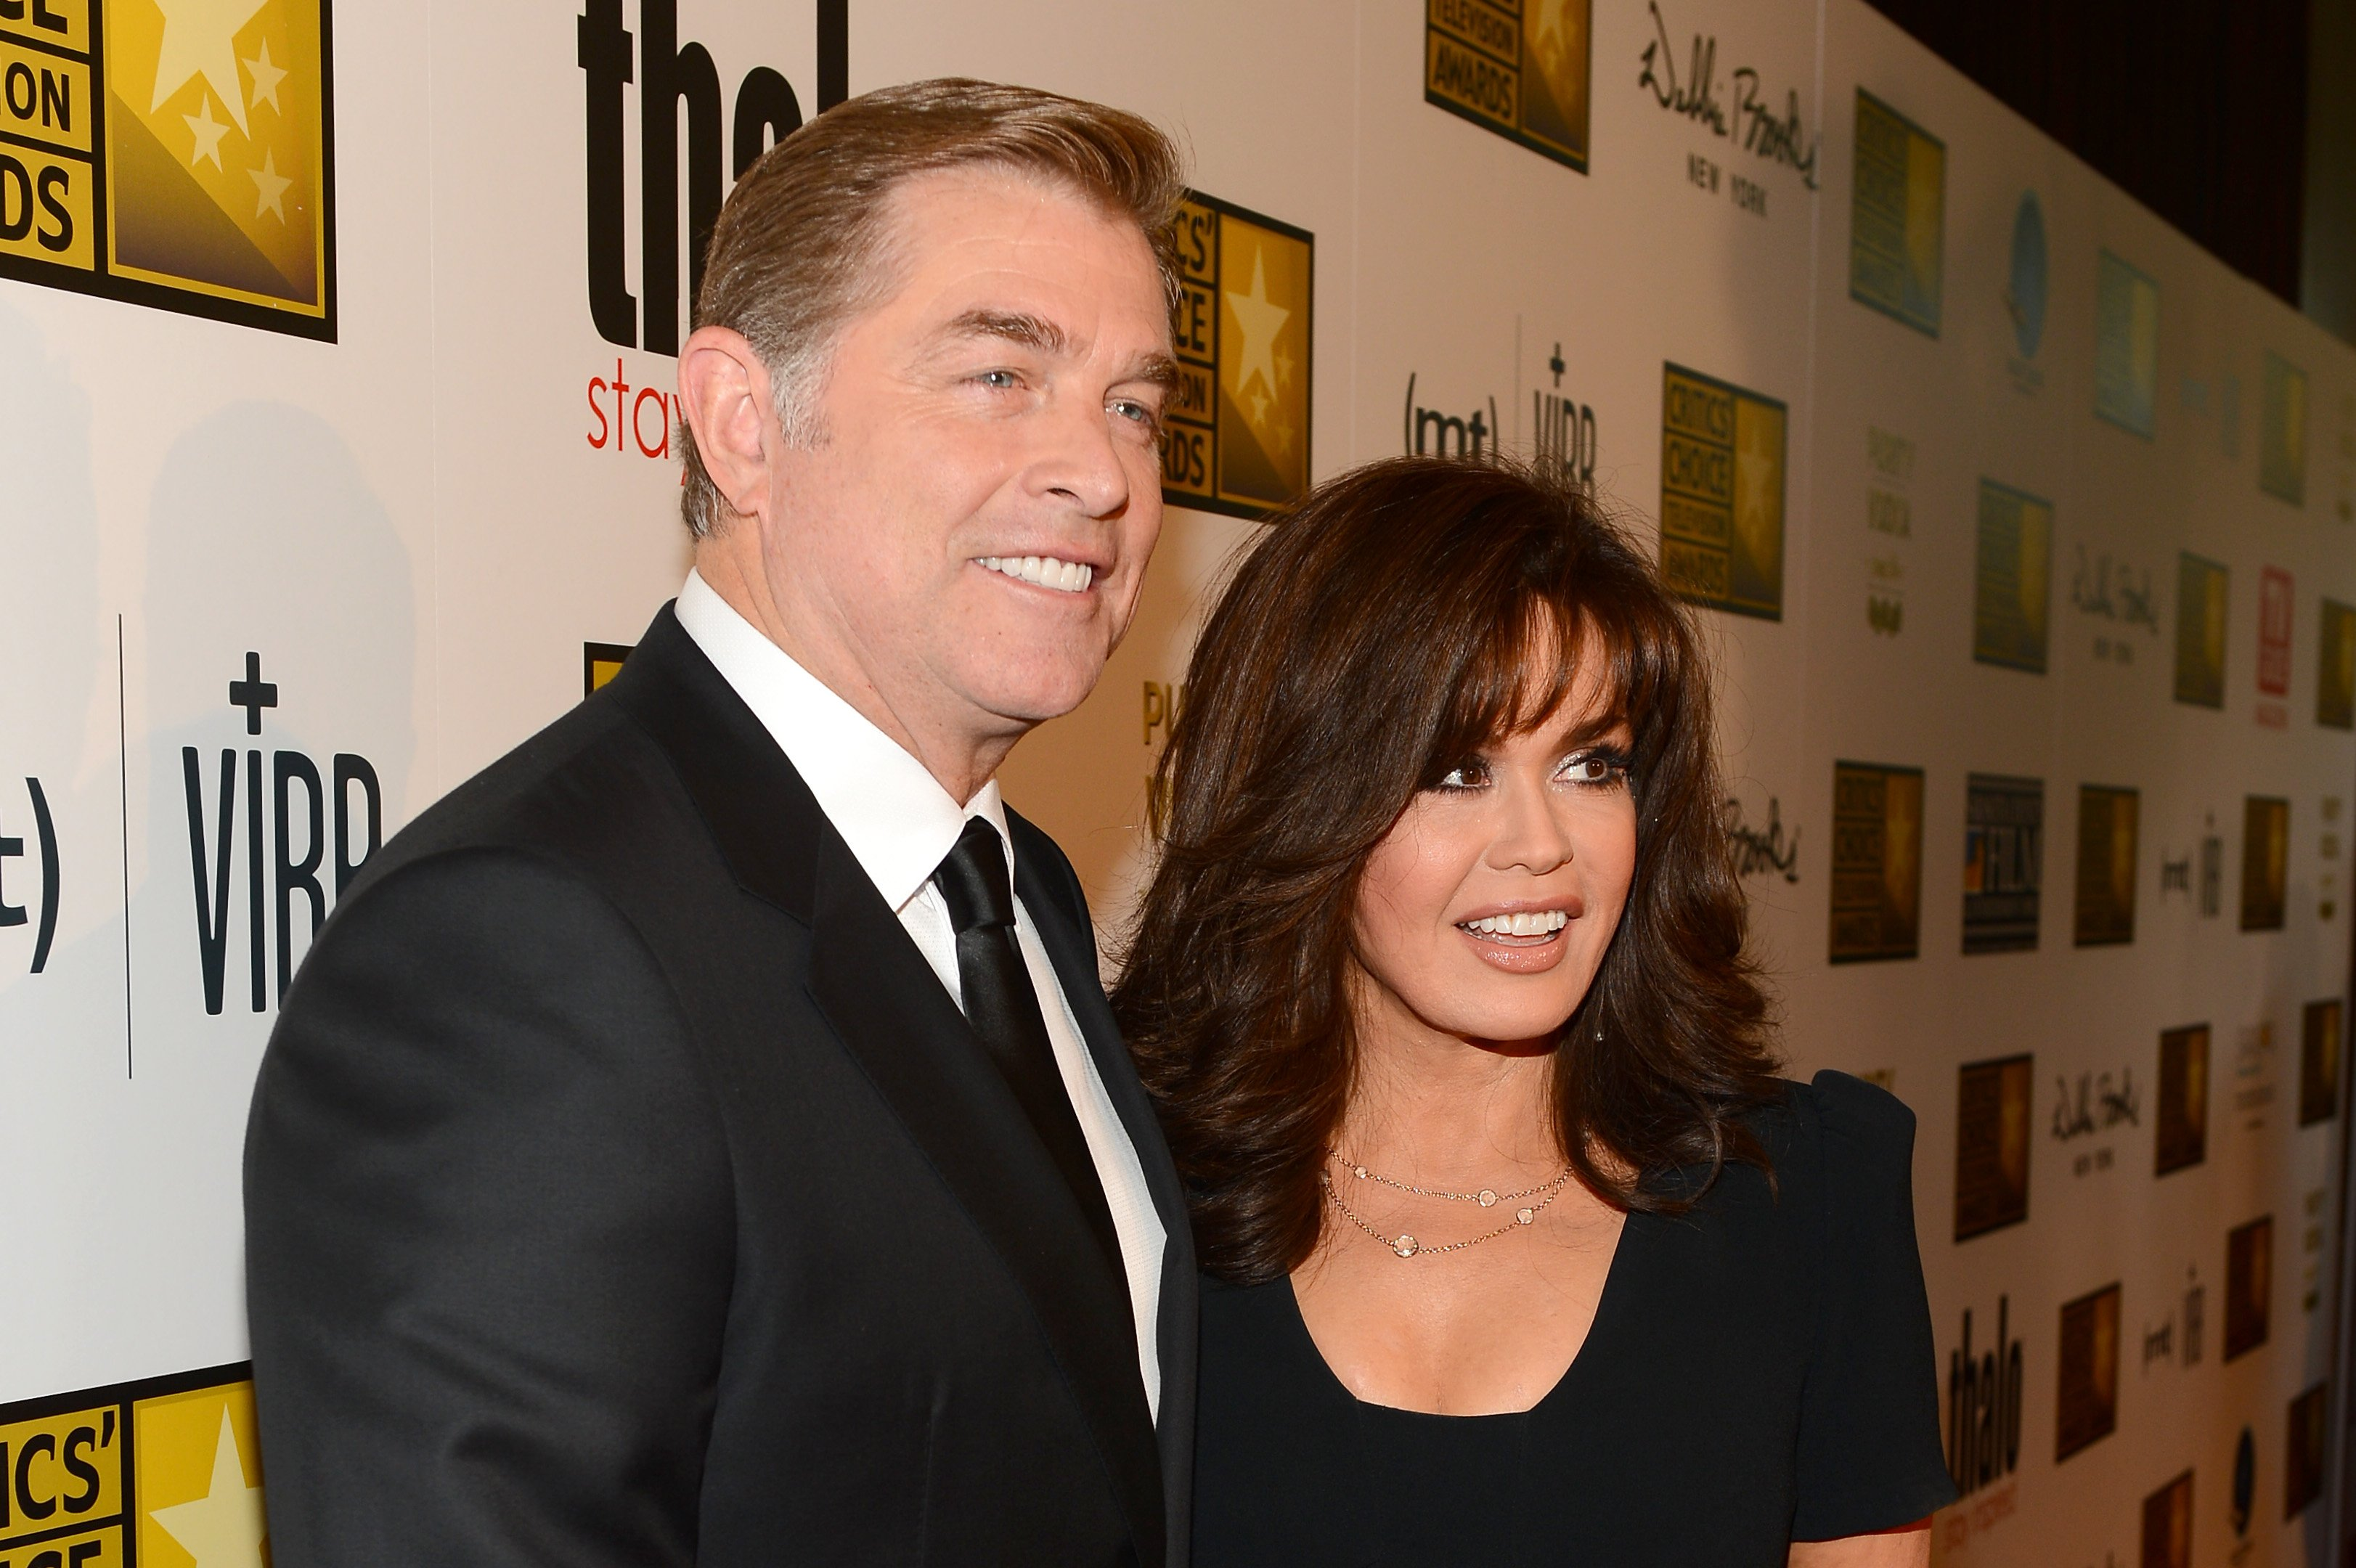 Steve Craig and wife Marie Osmond attend the Critics' Choice Television Awards in Los Angeles, California on June 10, 2013 | Photo: Getty Images